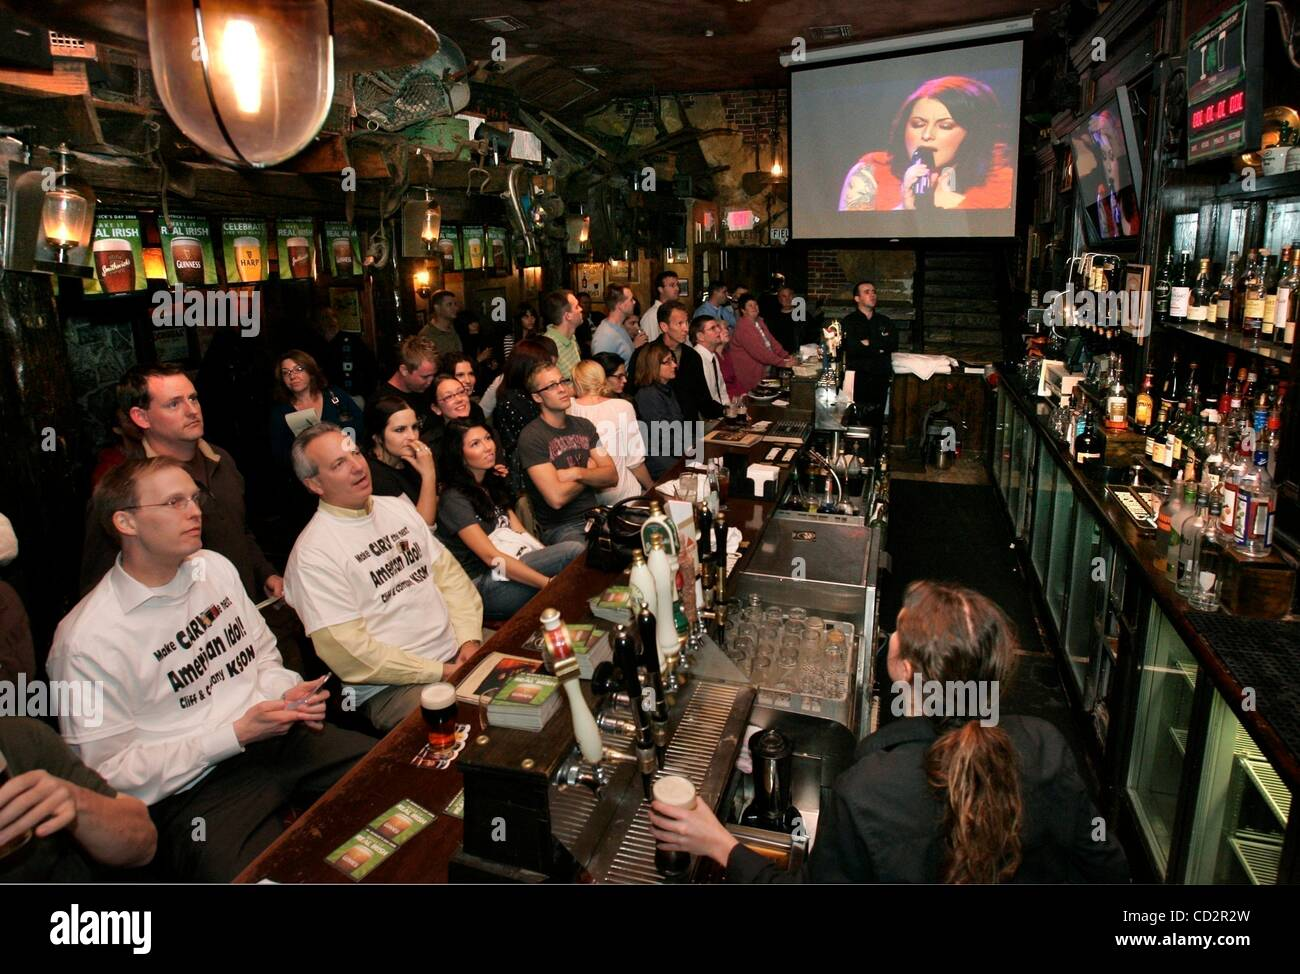 Mar 18, 2008 - San Diego, California, USA - At  The Field Pub in San Diego's Gaslamp District Carly Smithson is Stock Photo